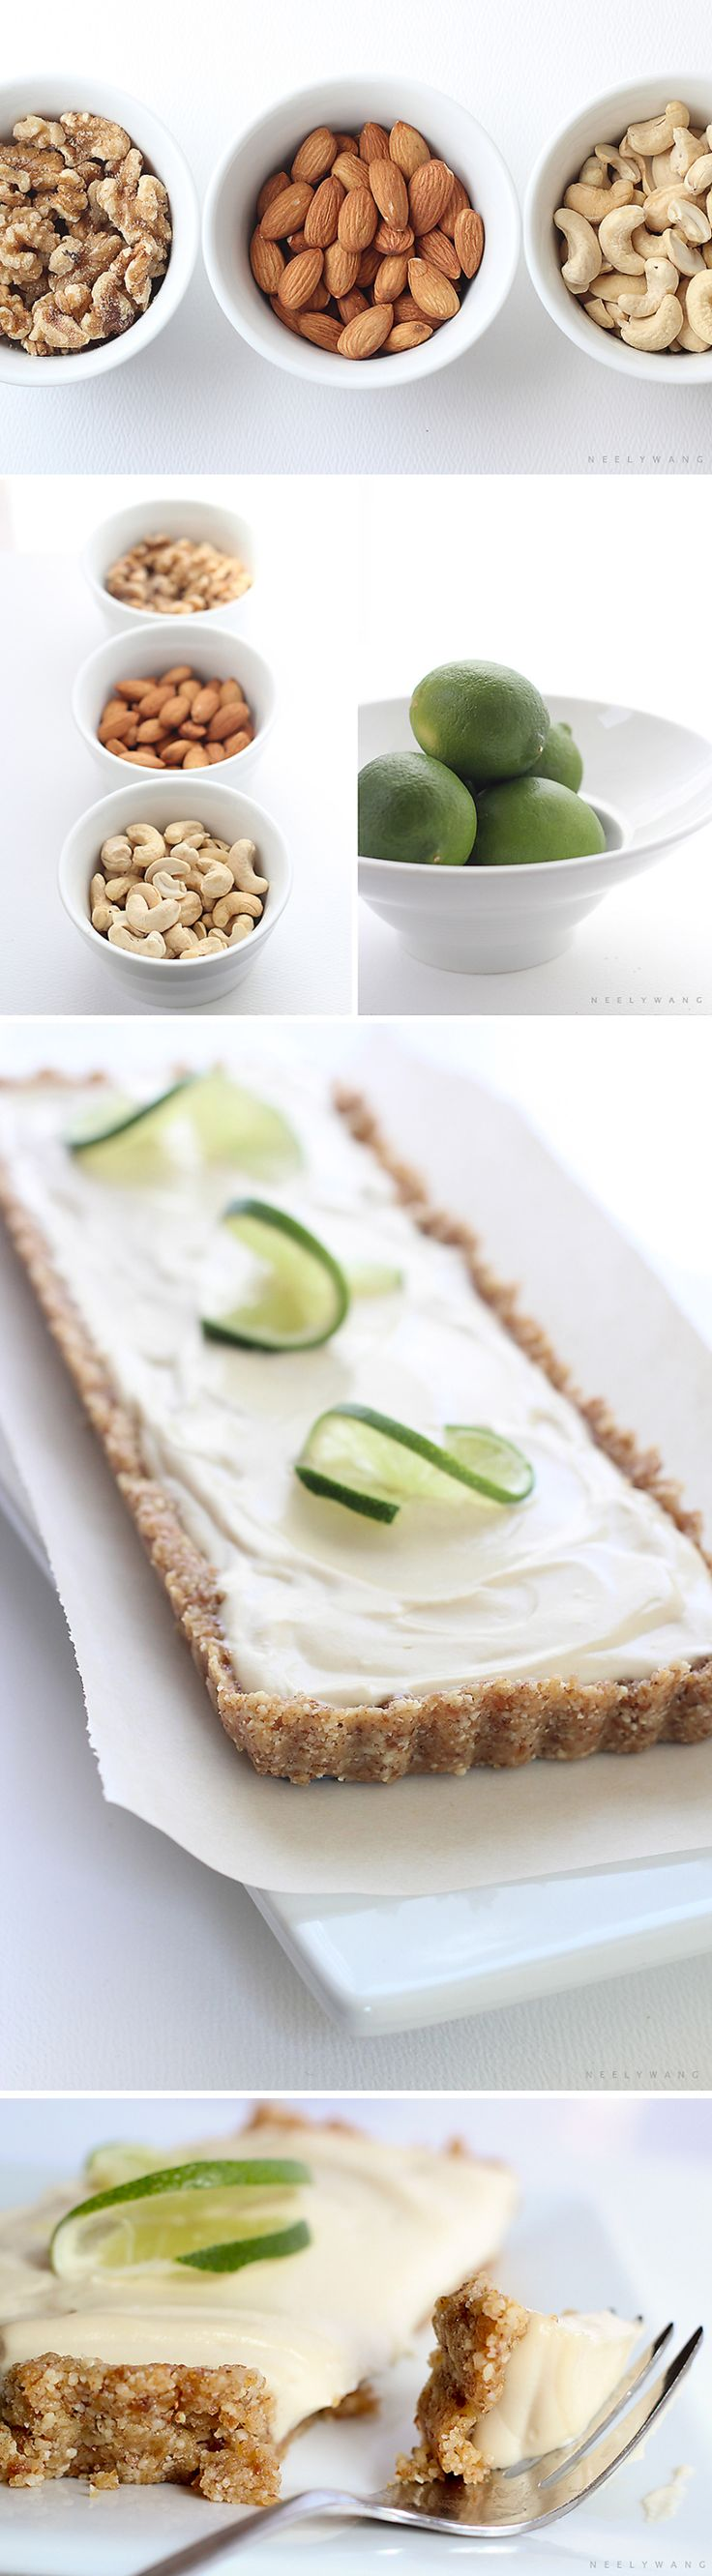 recipe for raw vegan lime tart: